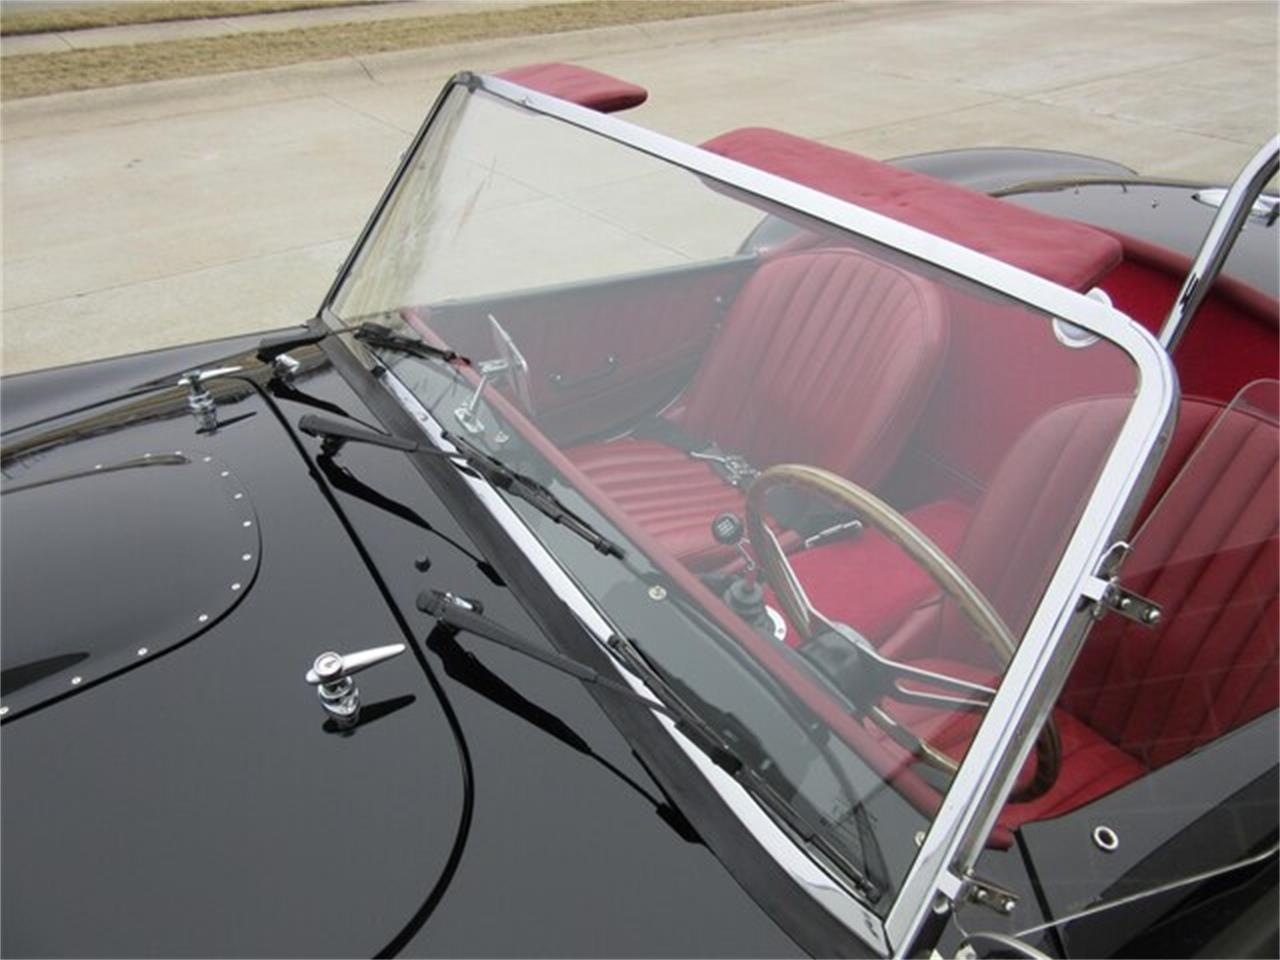 1985 Autokraft Cobra for sale in Greenwood, IN – photo 47